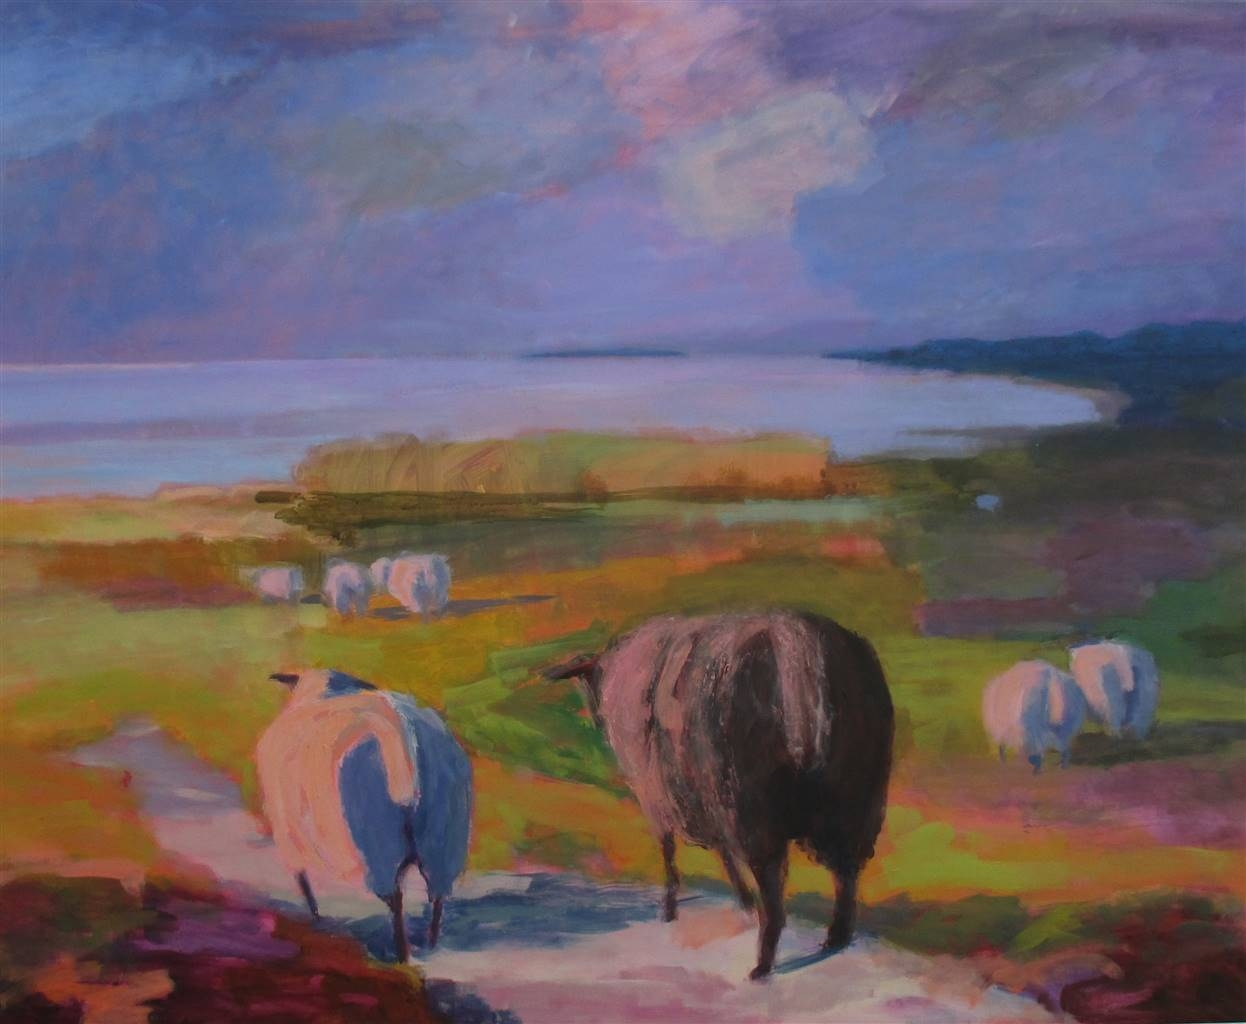 Margit Enggaard Poulsen, Sheep On The East Side, Fanoe, Acrylic on Canvas, 39.5'' x 49.5'' image